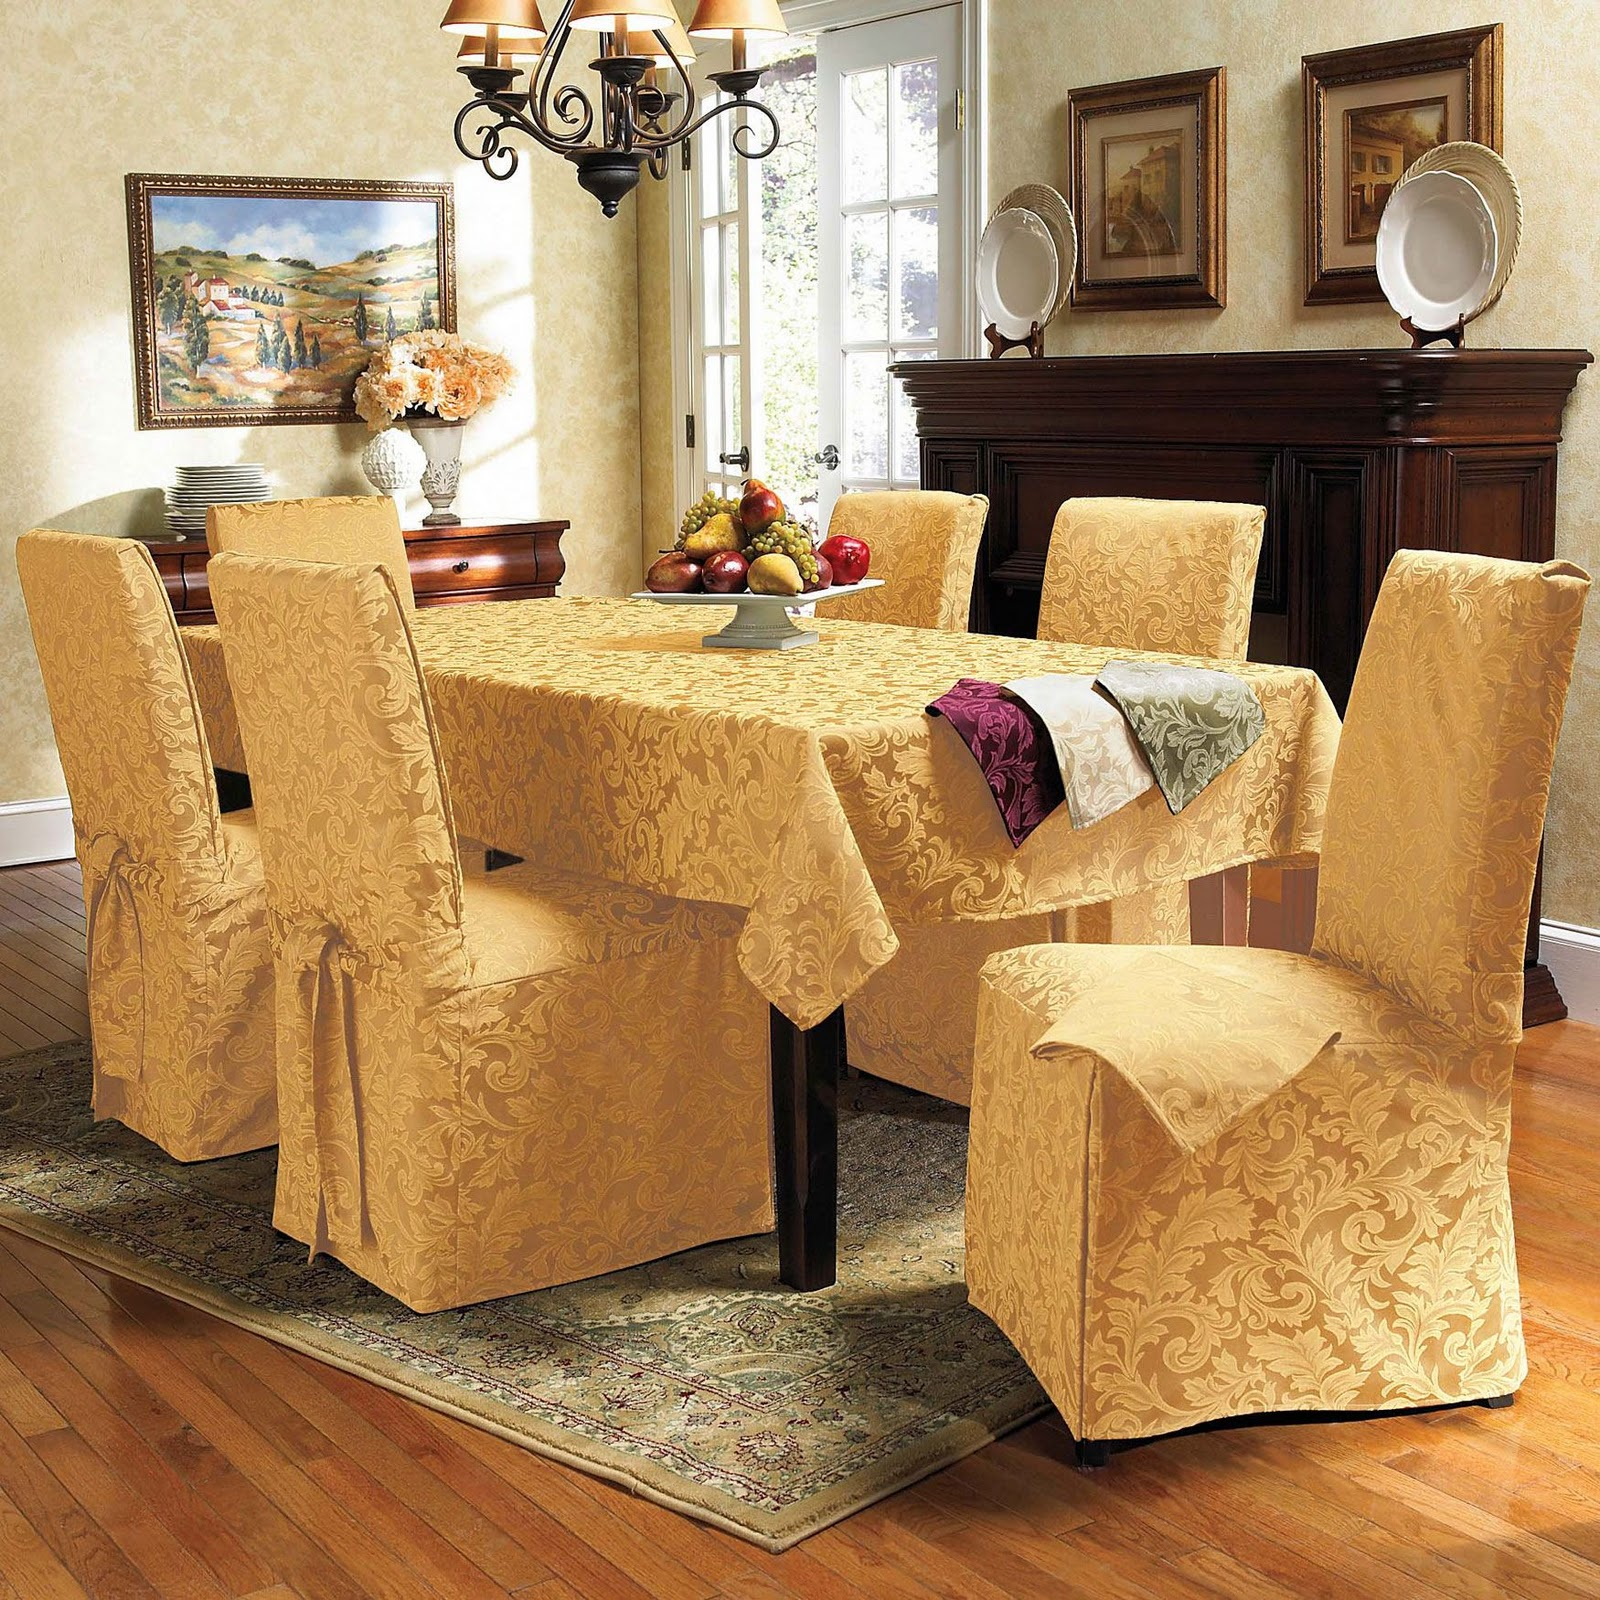 Dining Room Table Chair Covers Photo  1  Design Your Home. Kitchen Details And Design. Kitchen Designers Seattle. Luxury Kitchen Designers. Galley Kitchen Design Ideas. White Kitchen Designs. Kitchen Design Software Ikea. Kitchen Design Samples. Fresh Kitchen Designs